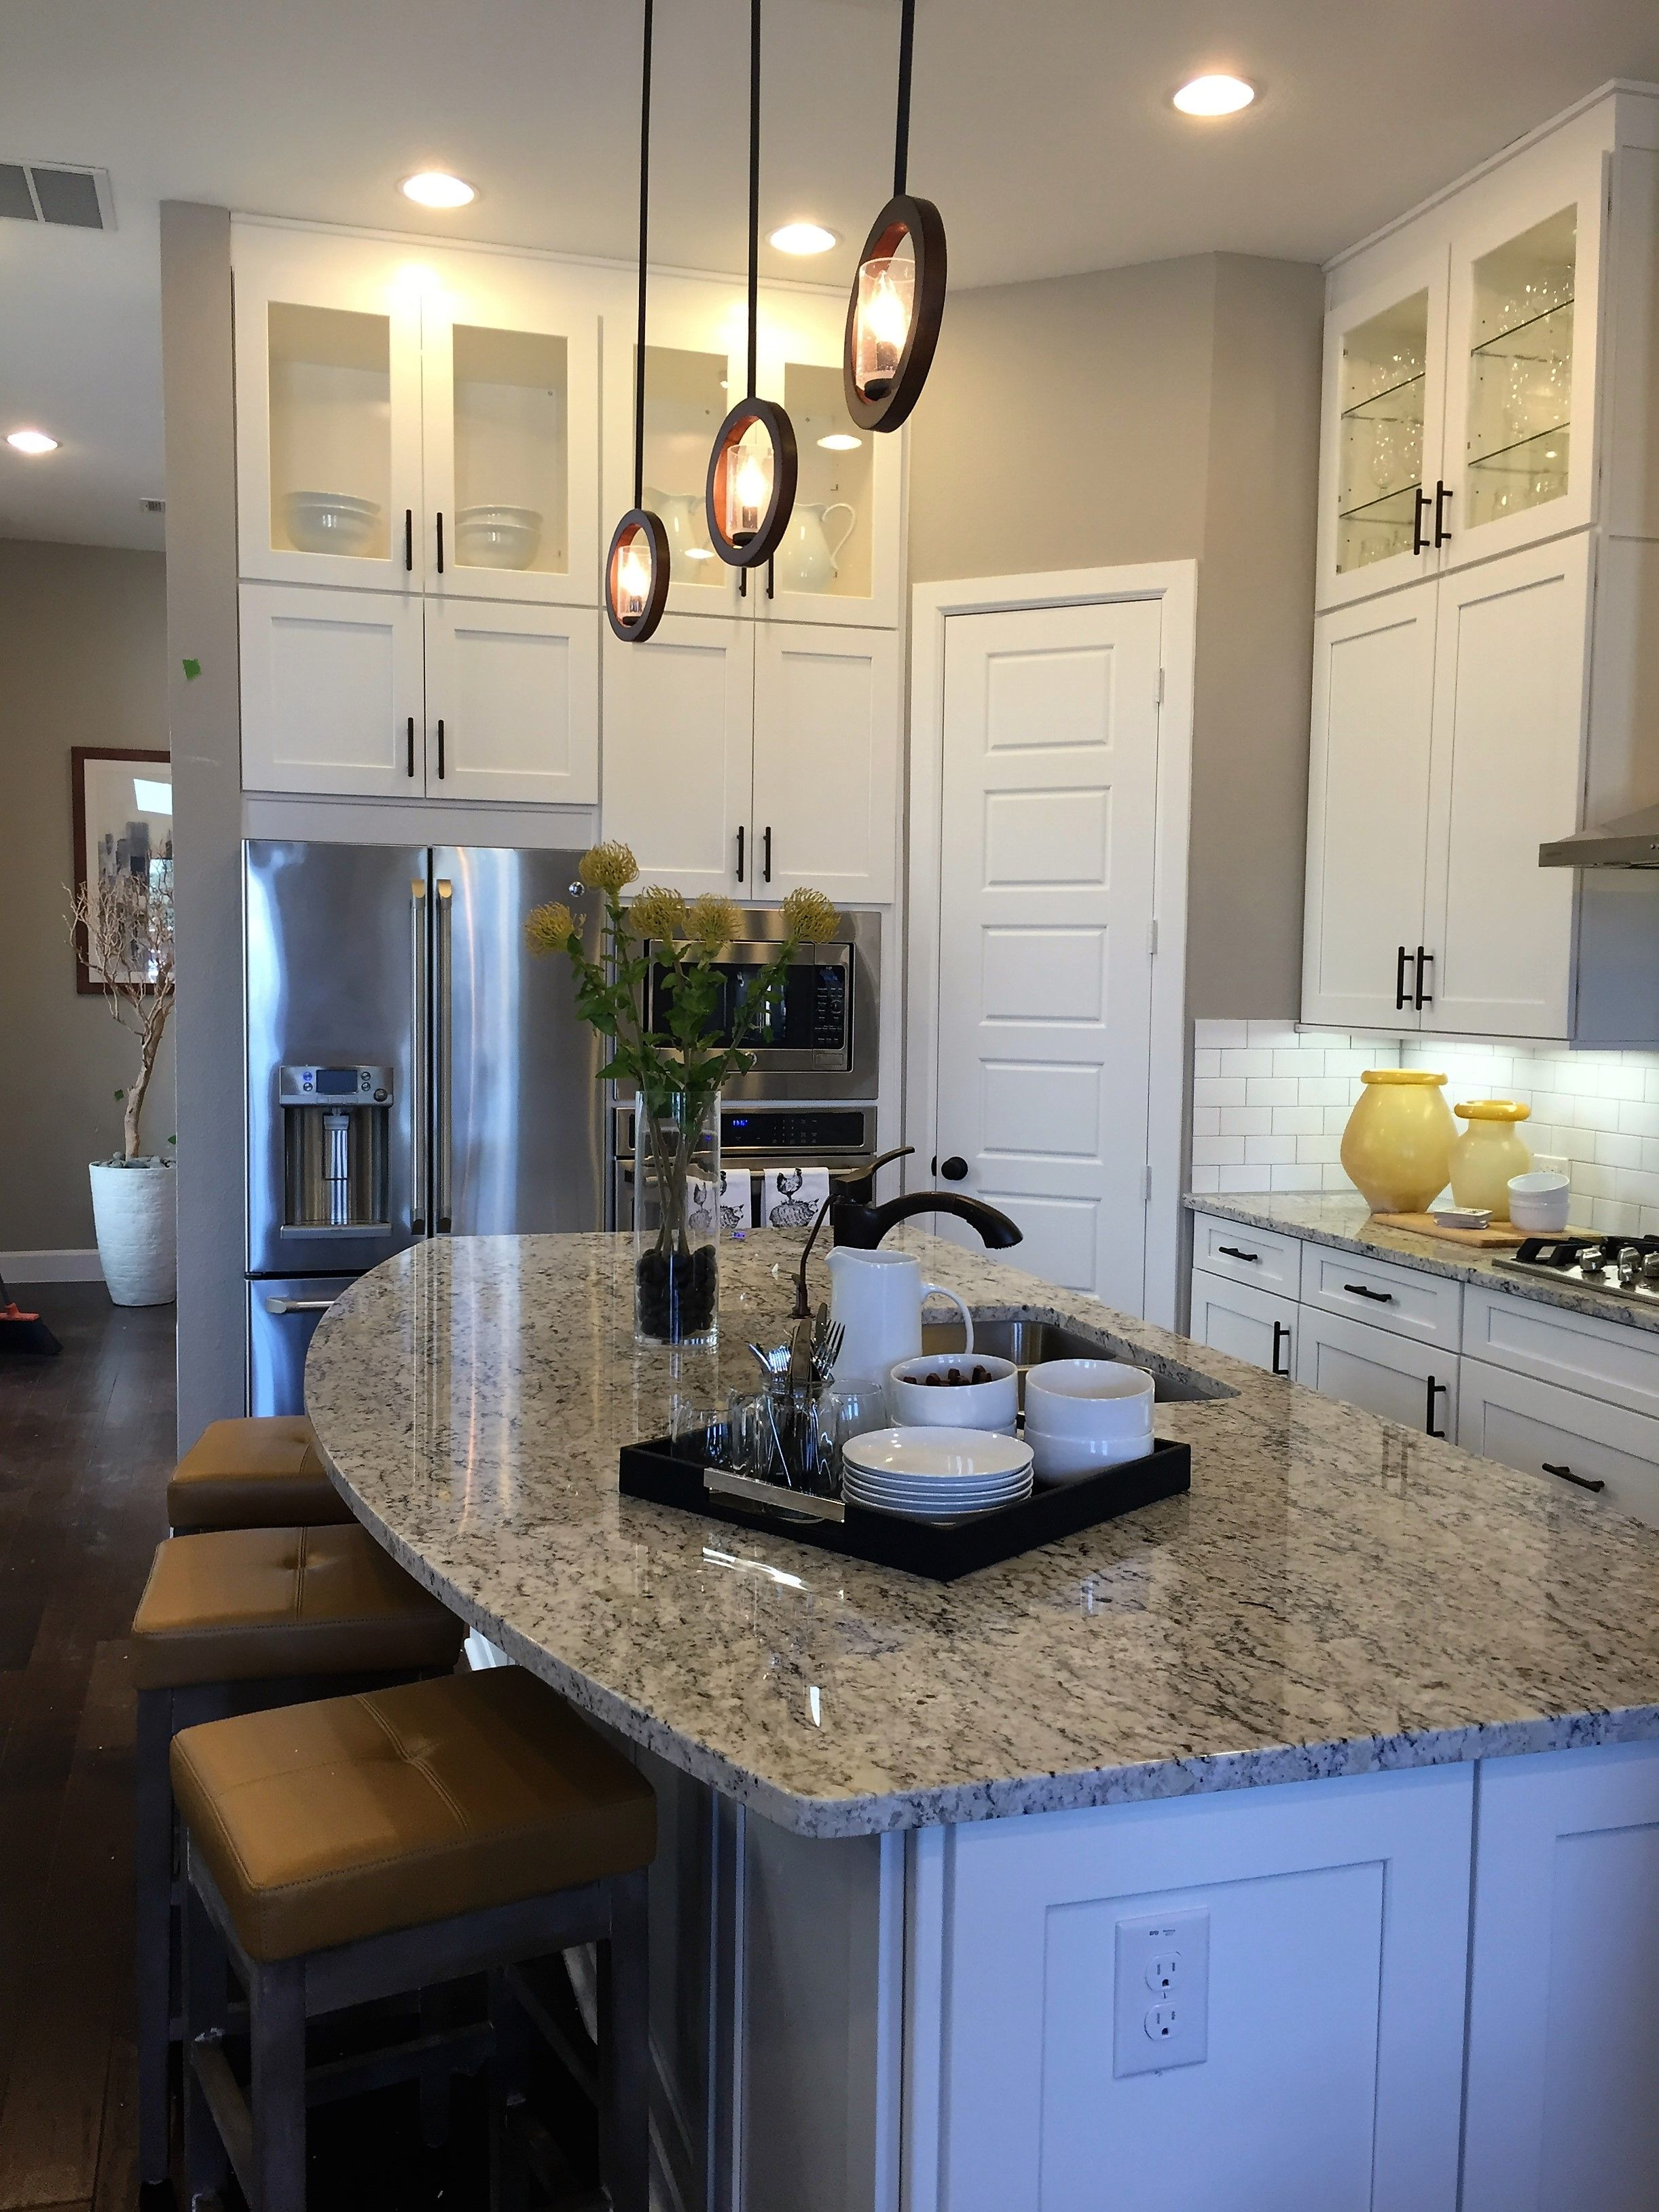 Pin by Wendy Holguin on home ideas | Model home decorating ... on Model Kitchen Ideas  id=16423